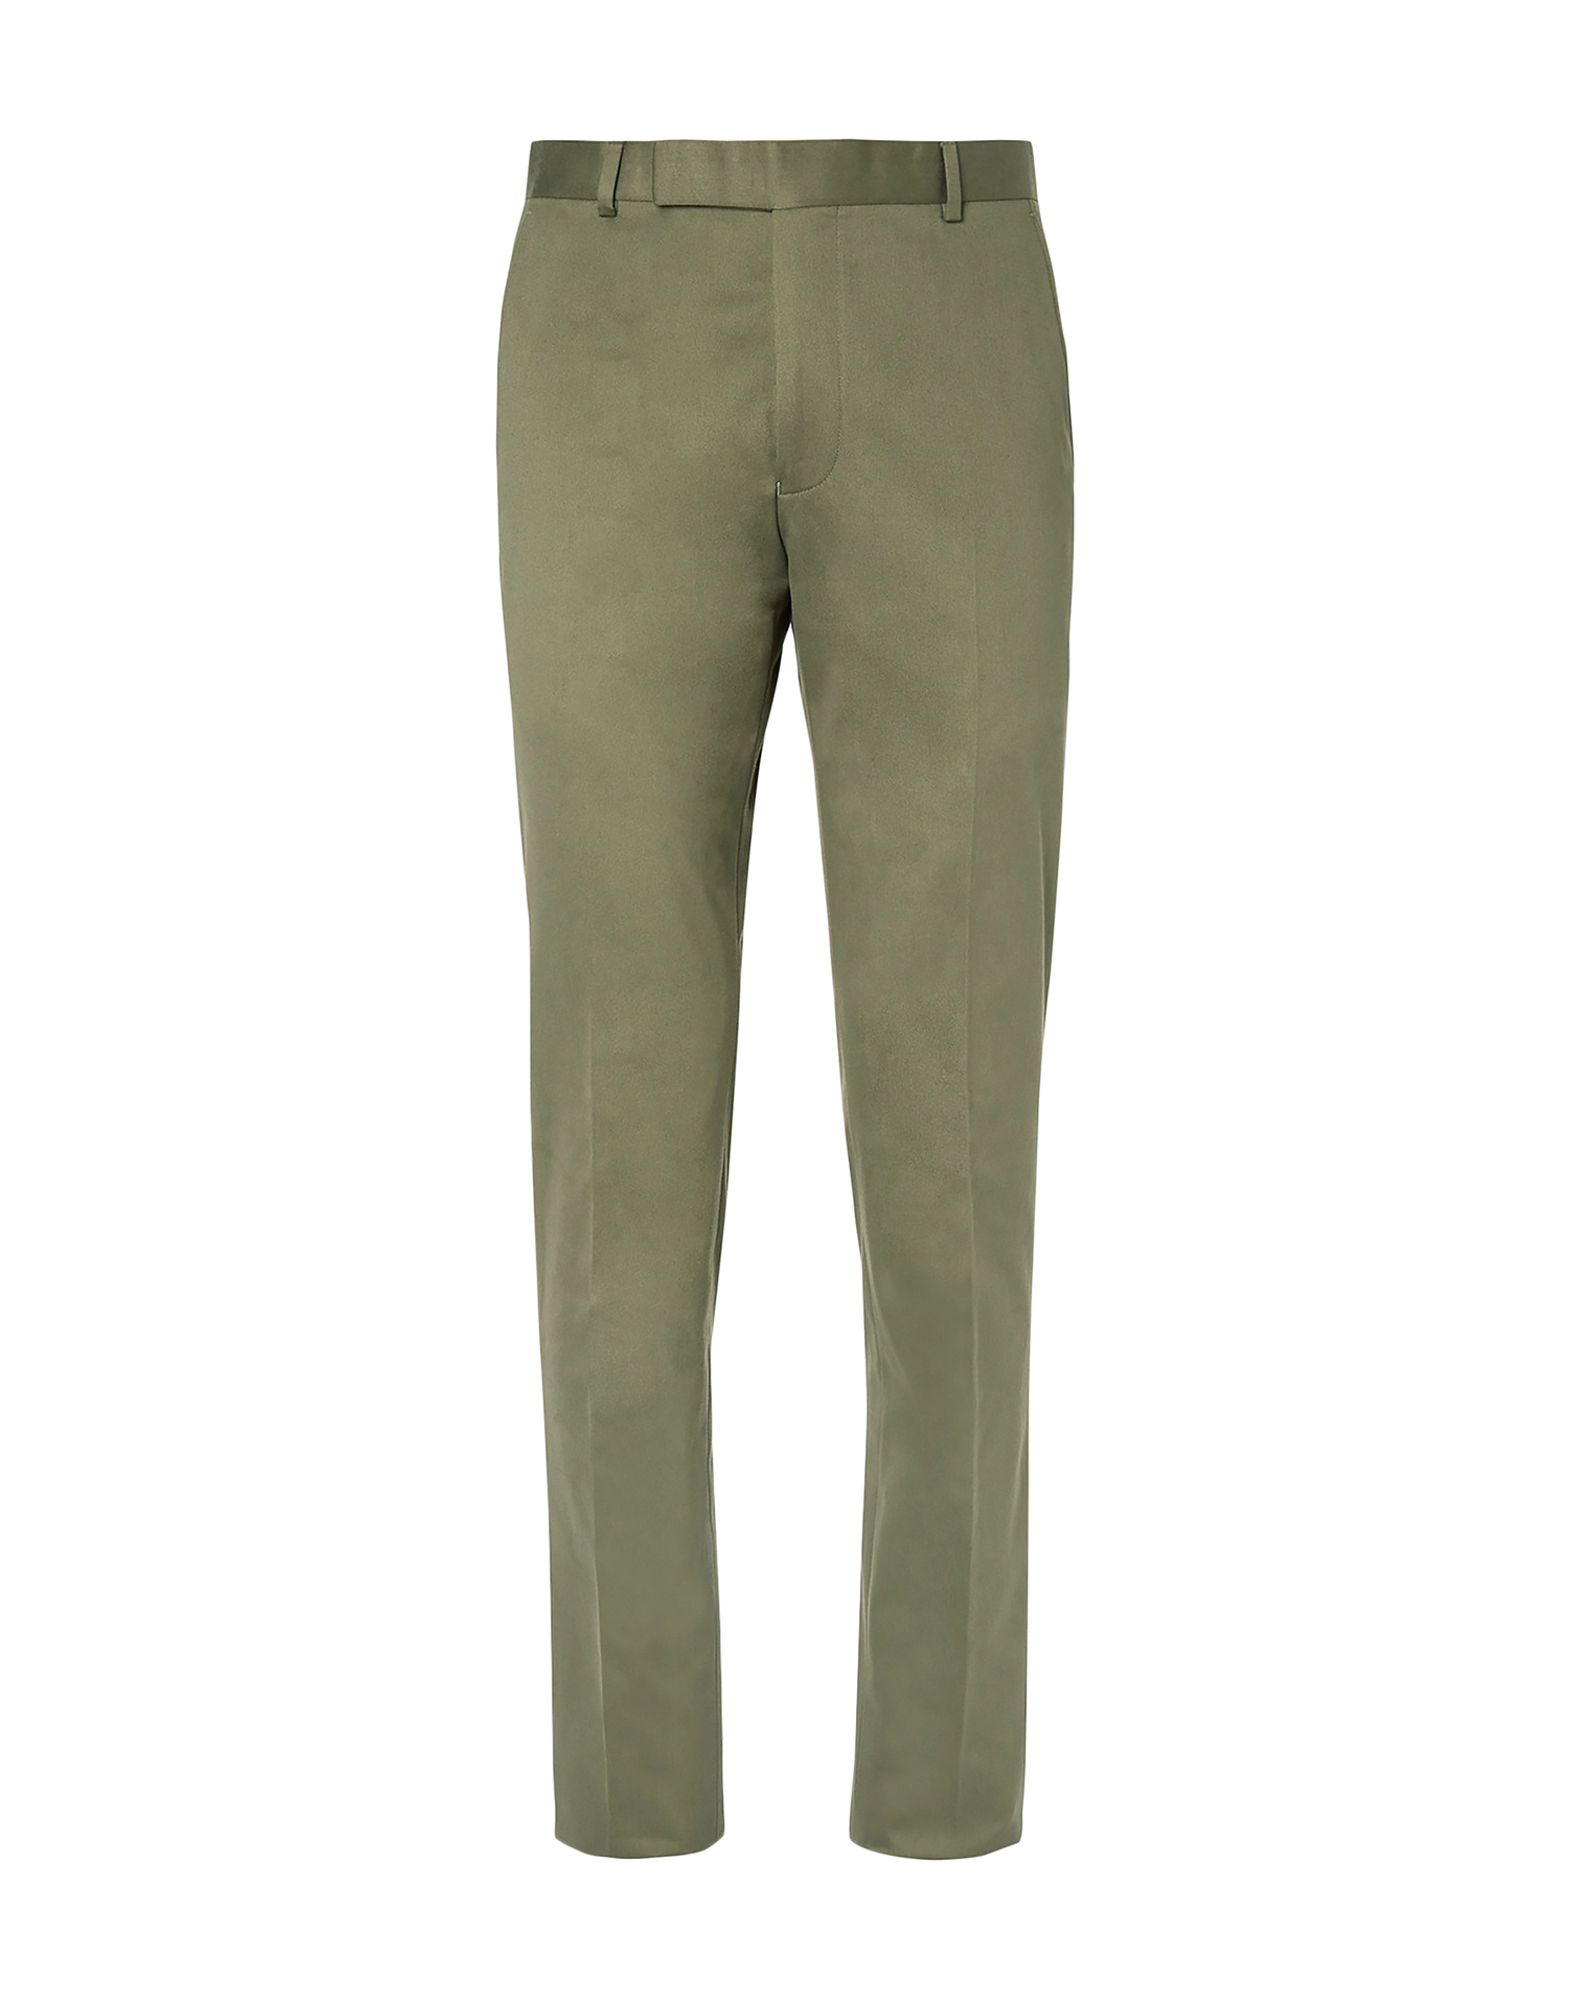 RICHARD JAMES | RICHARD JAMES Casual pants | Goxip